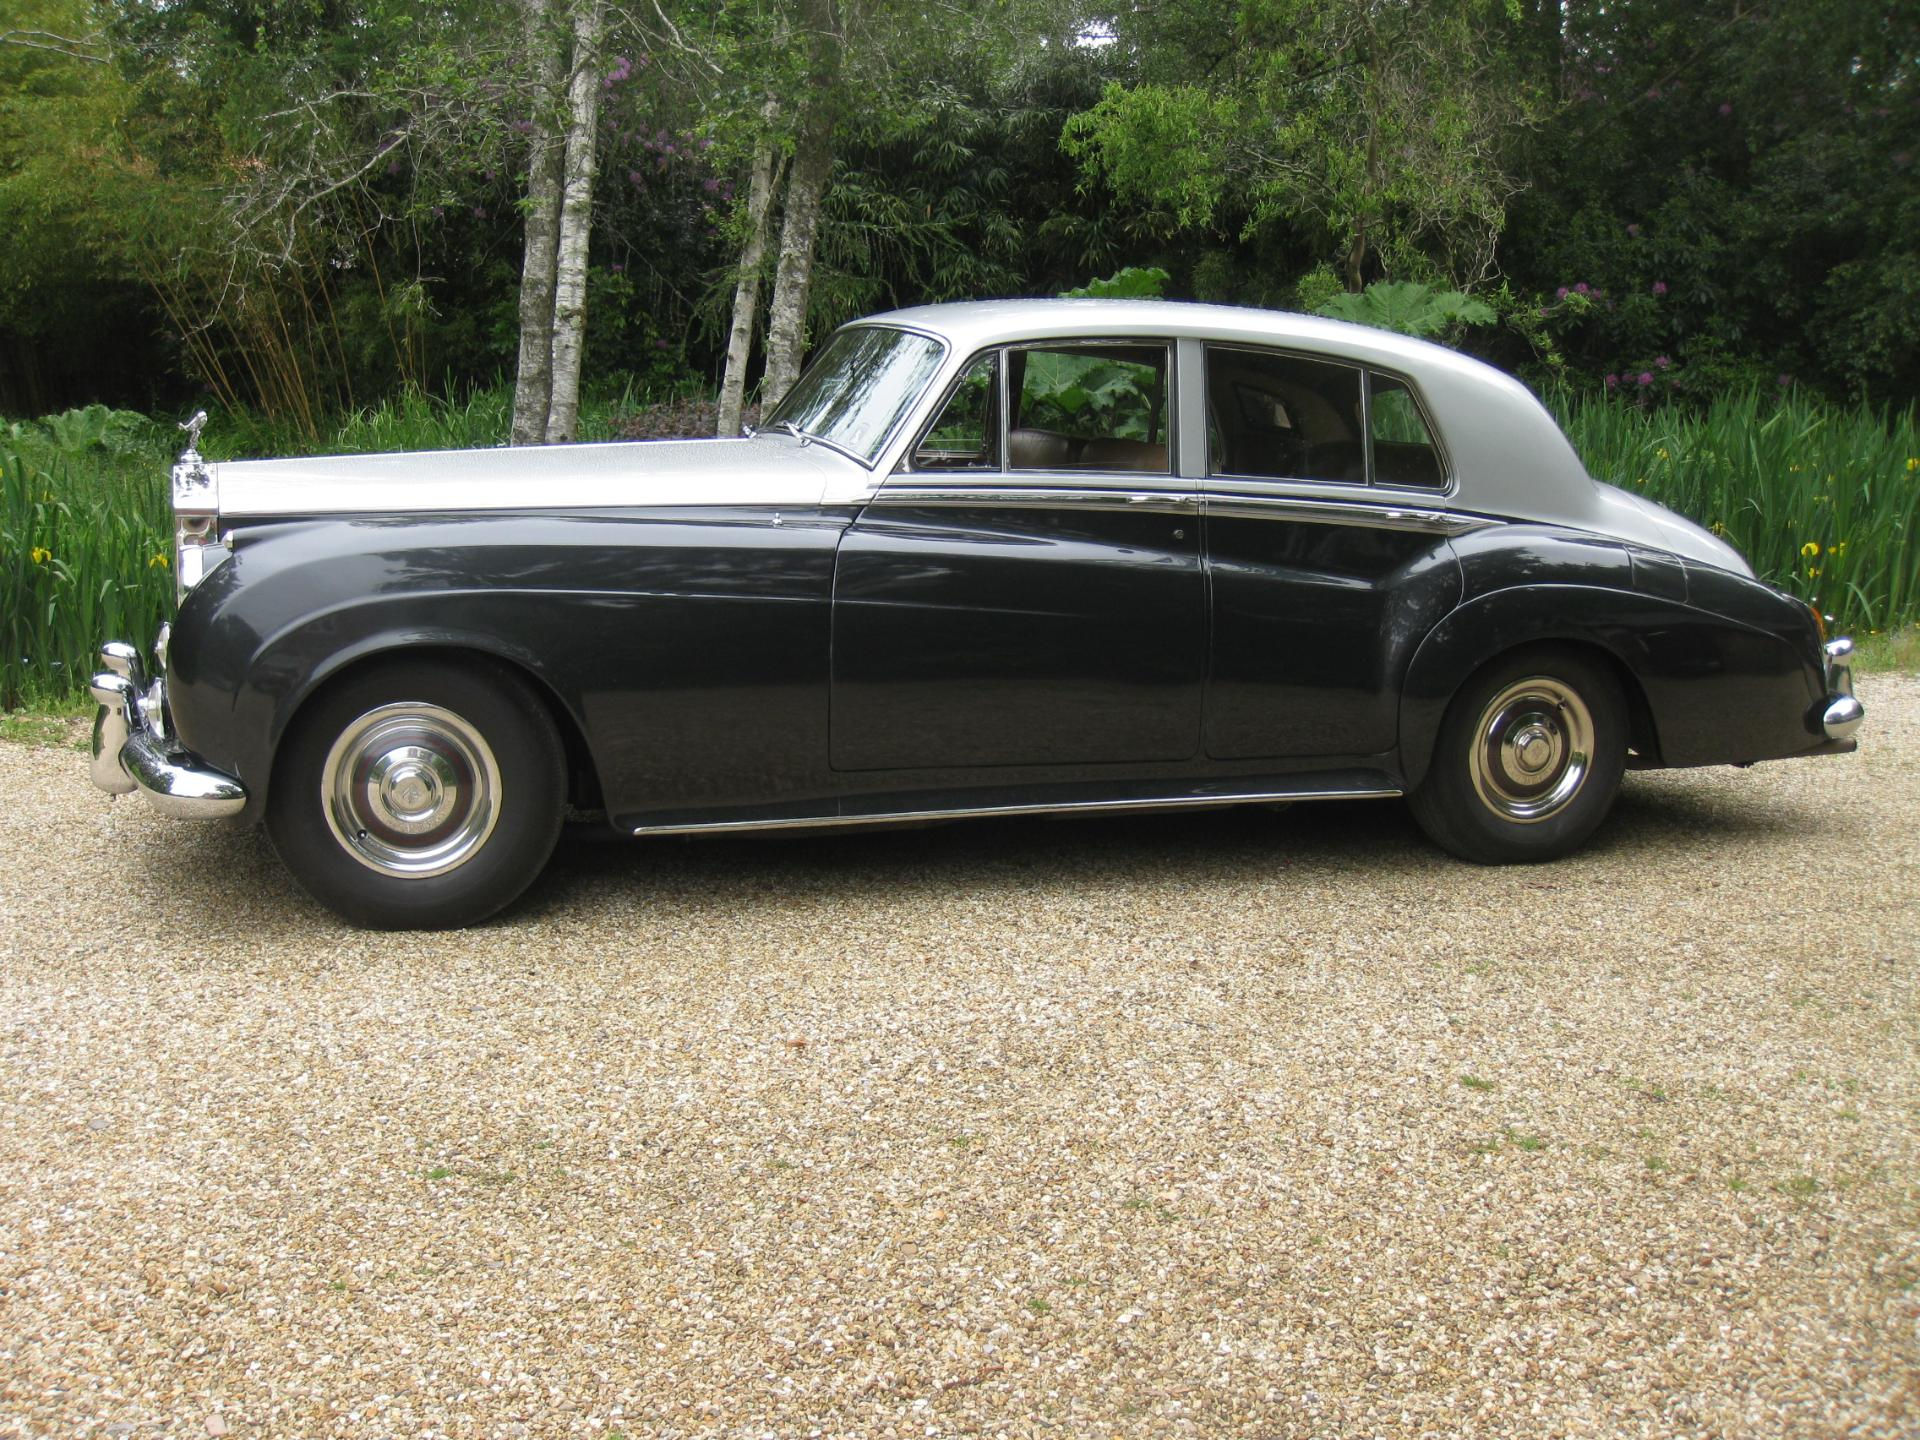 1962 Rolls-Royce Silver Cloud II Automatic For Sale In Landford, Wiltshire